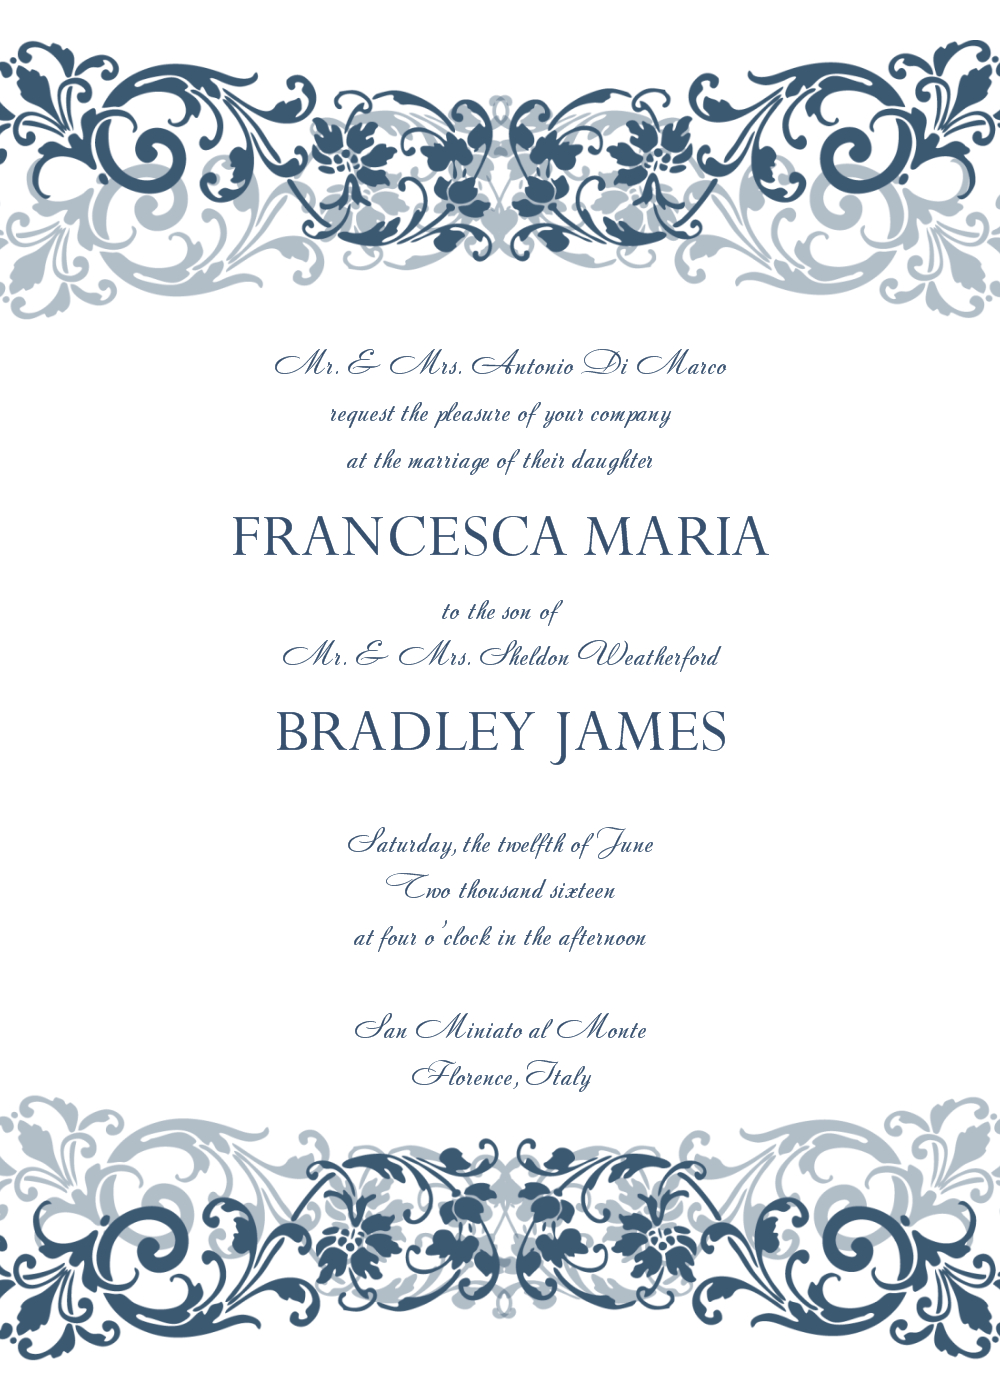 Free Wedding Invitation Templates For Word   Wedding Invitation - Free Printable Wedding Invitations With Photo